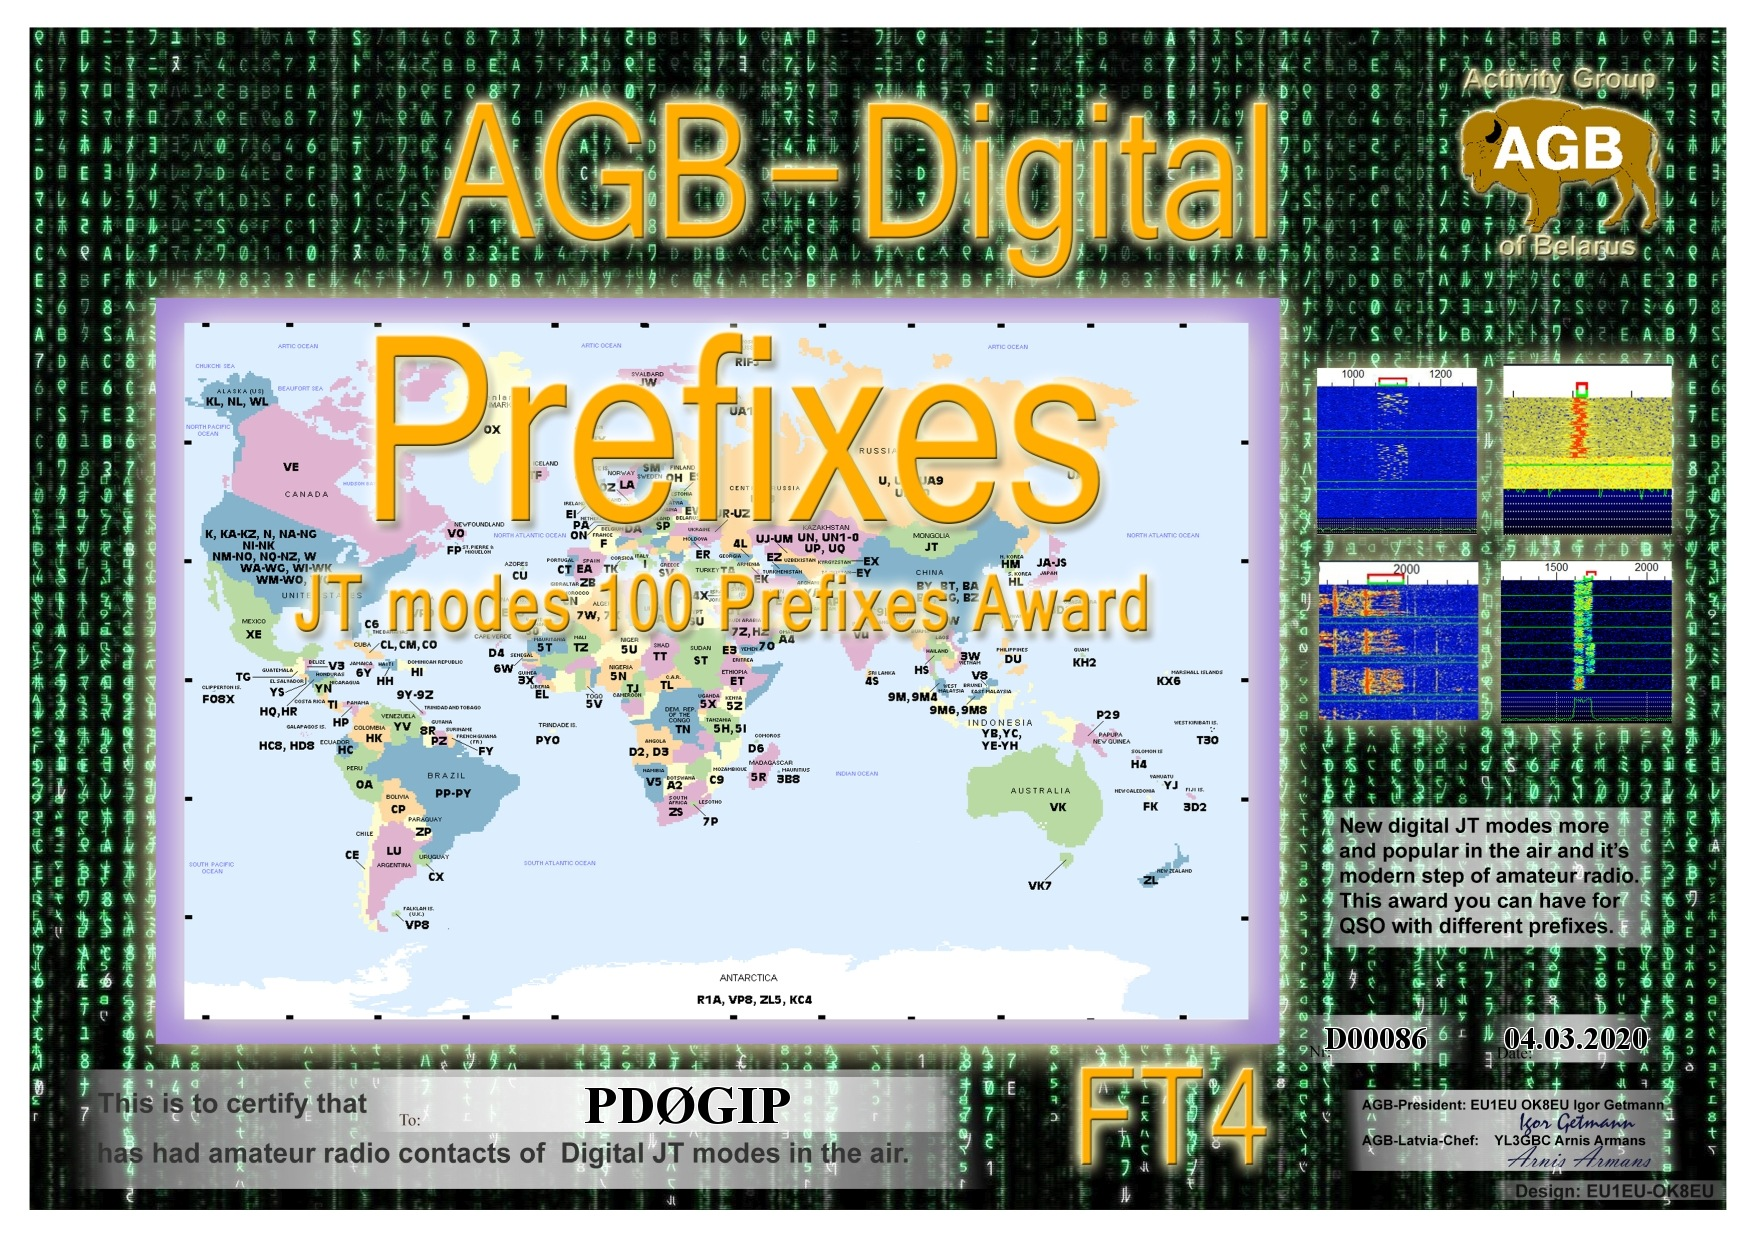 PD0GIP PREFIXES FT4 100 AGB